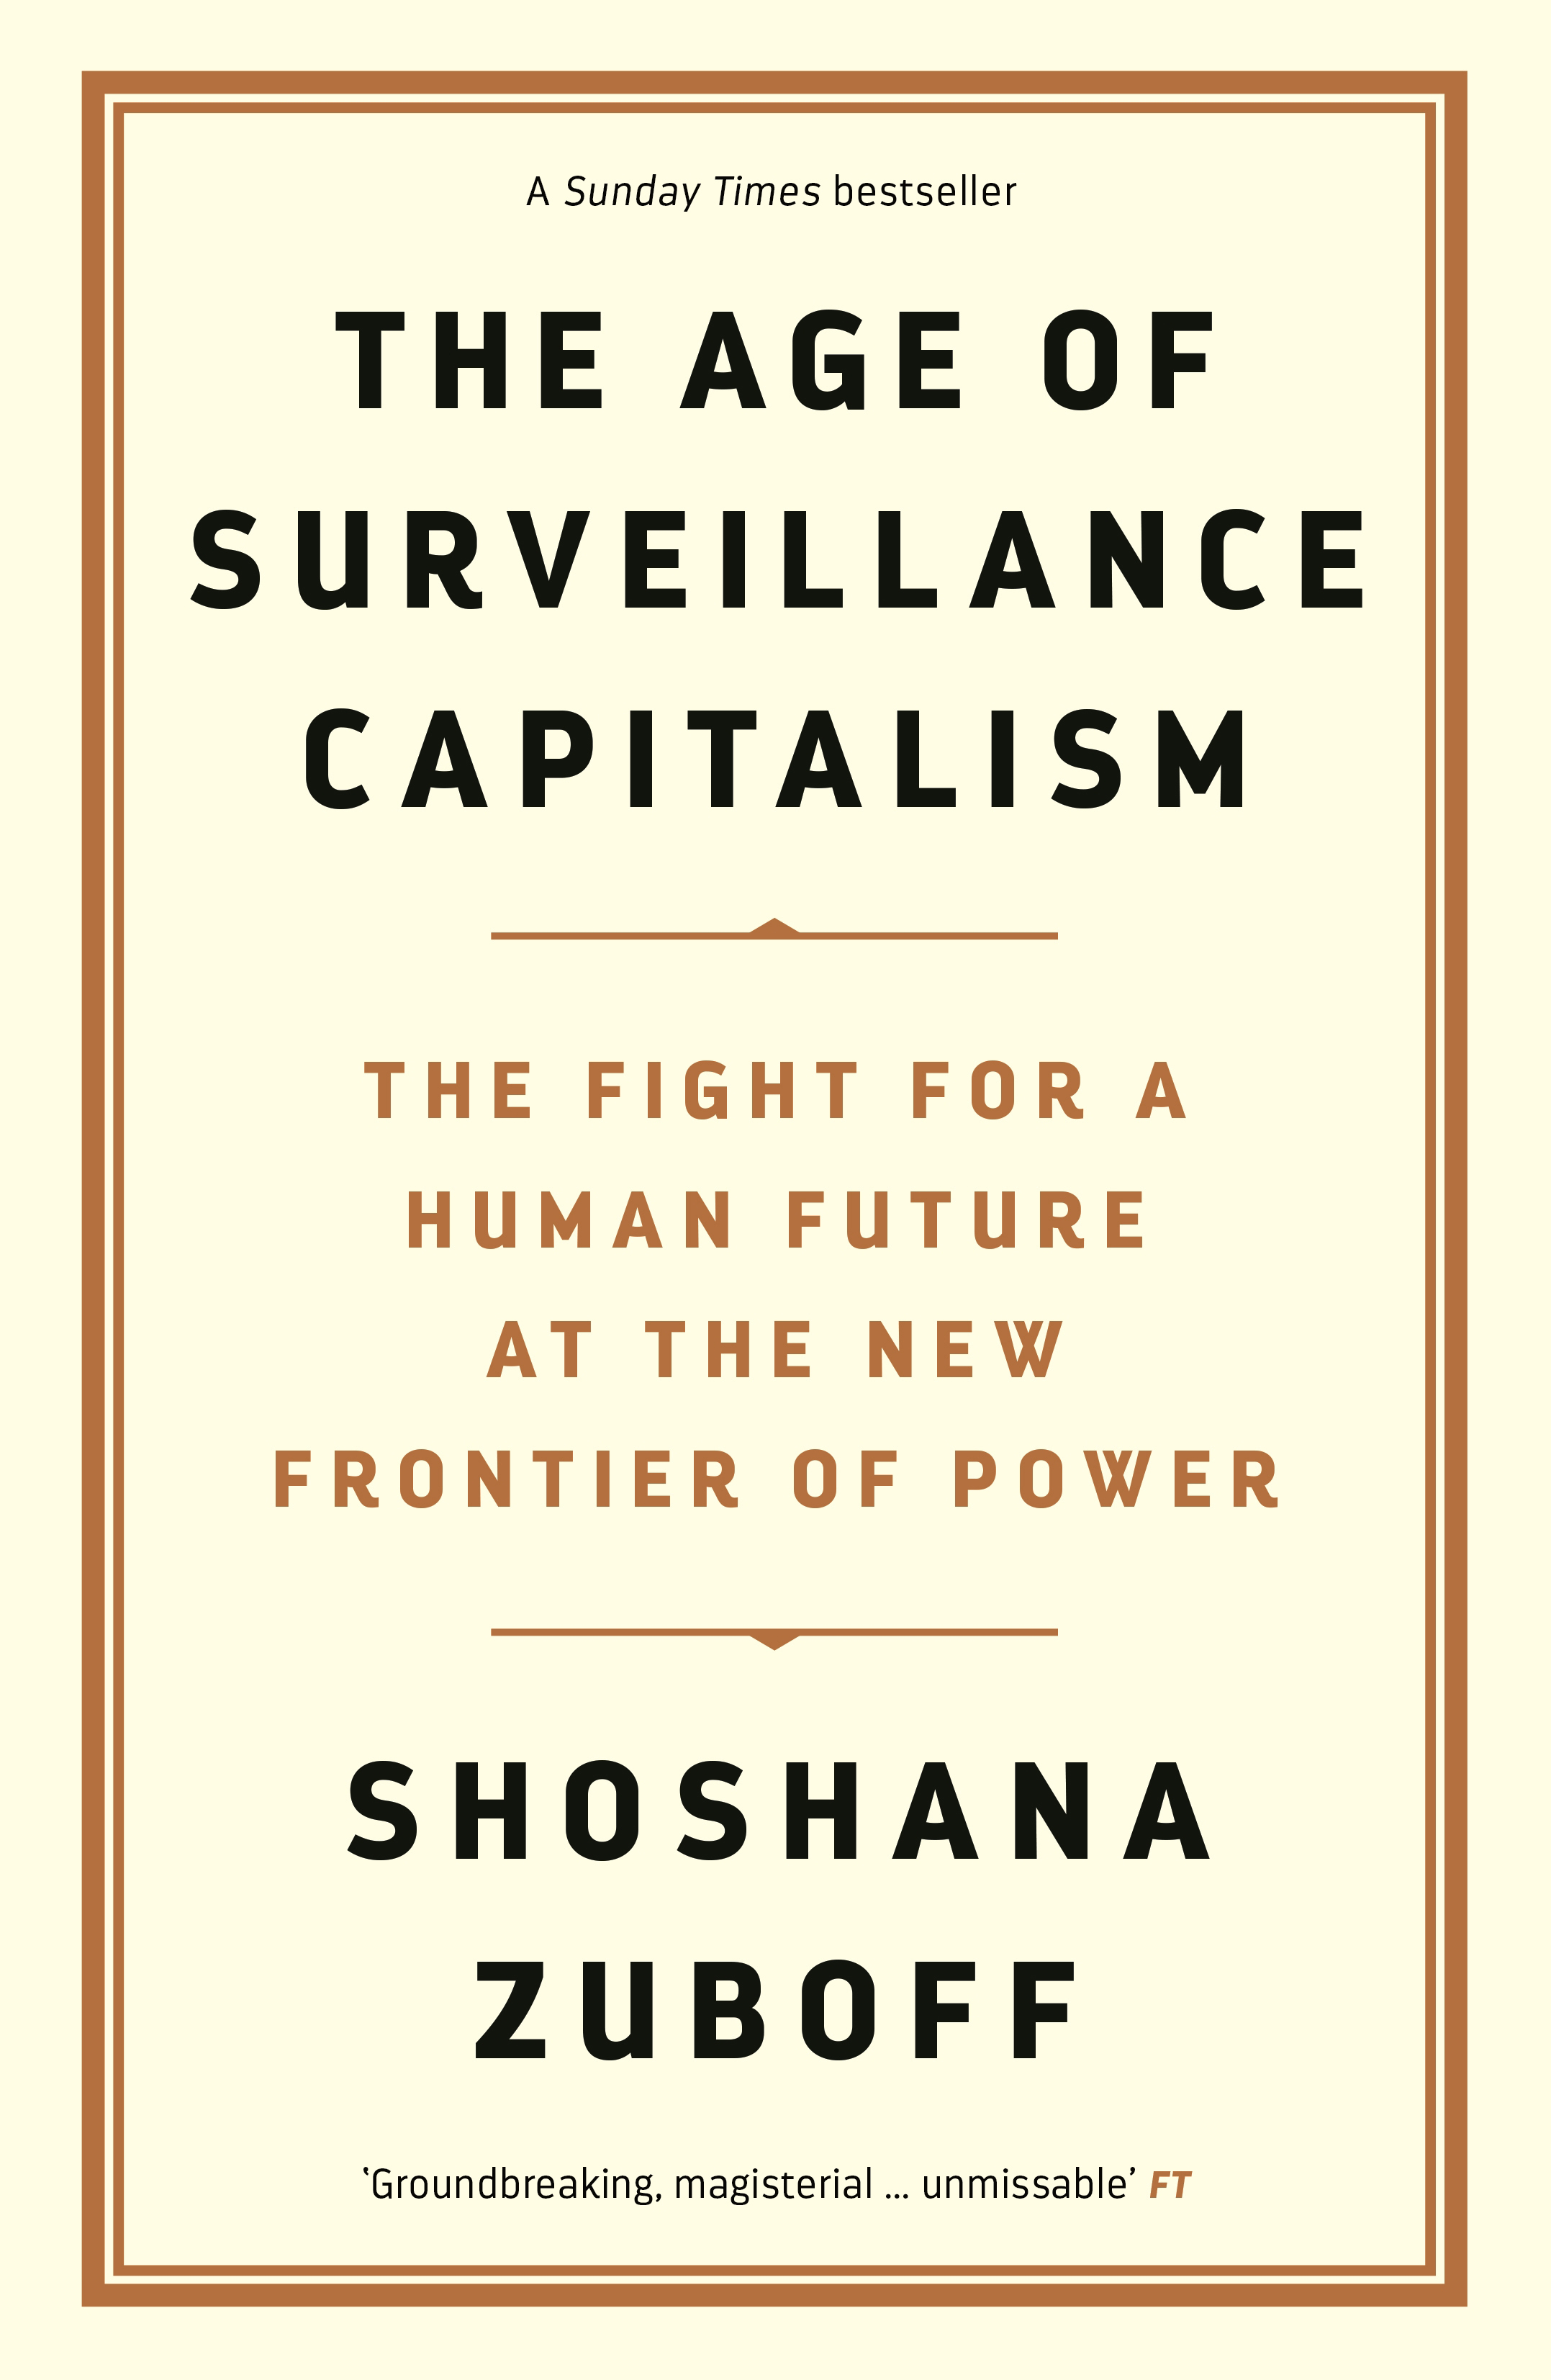 The Age of Surveillance Capitalism: The Fight for the Future at the New Frontier of Power by Professor Shoshana Zuboff, ISBN: 9781781256848